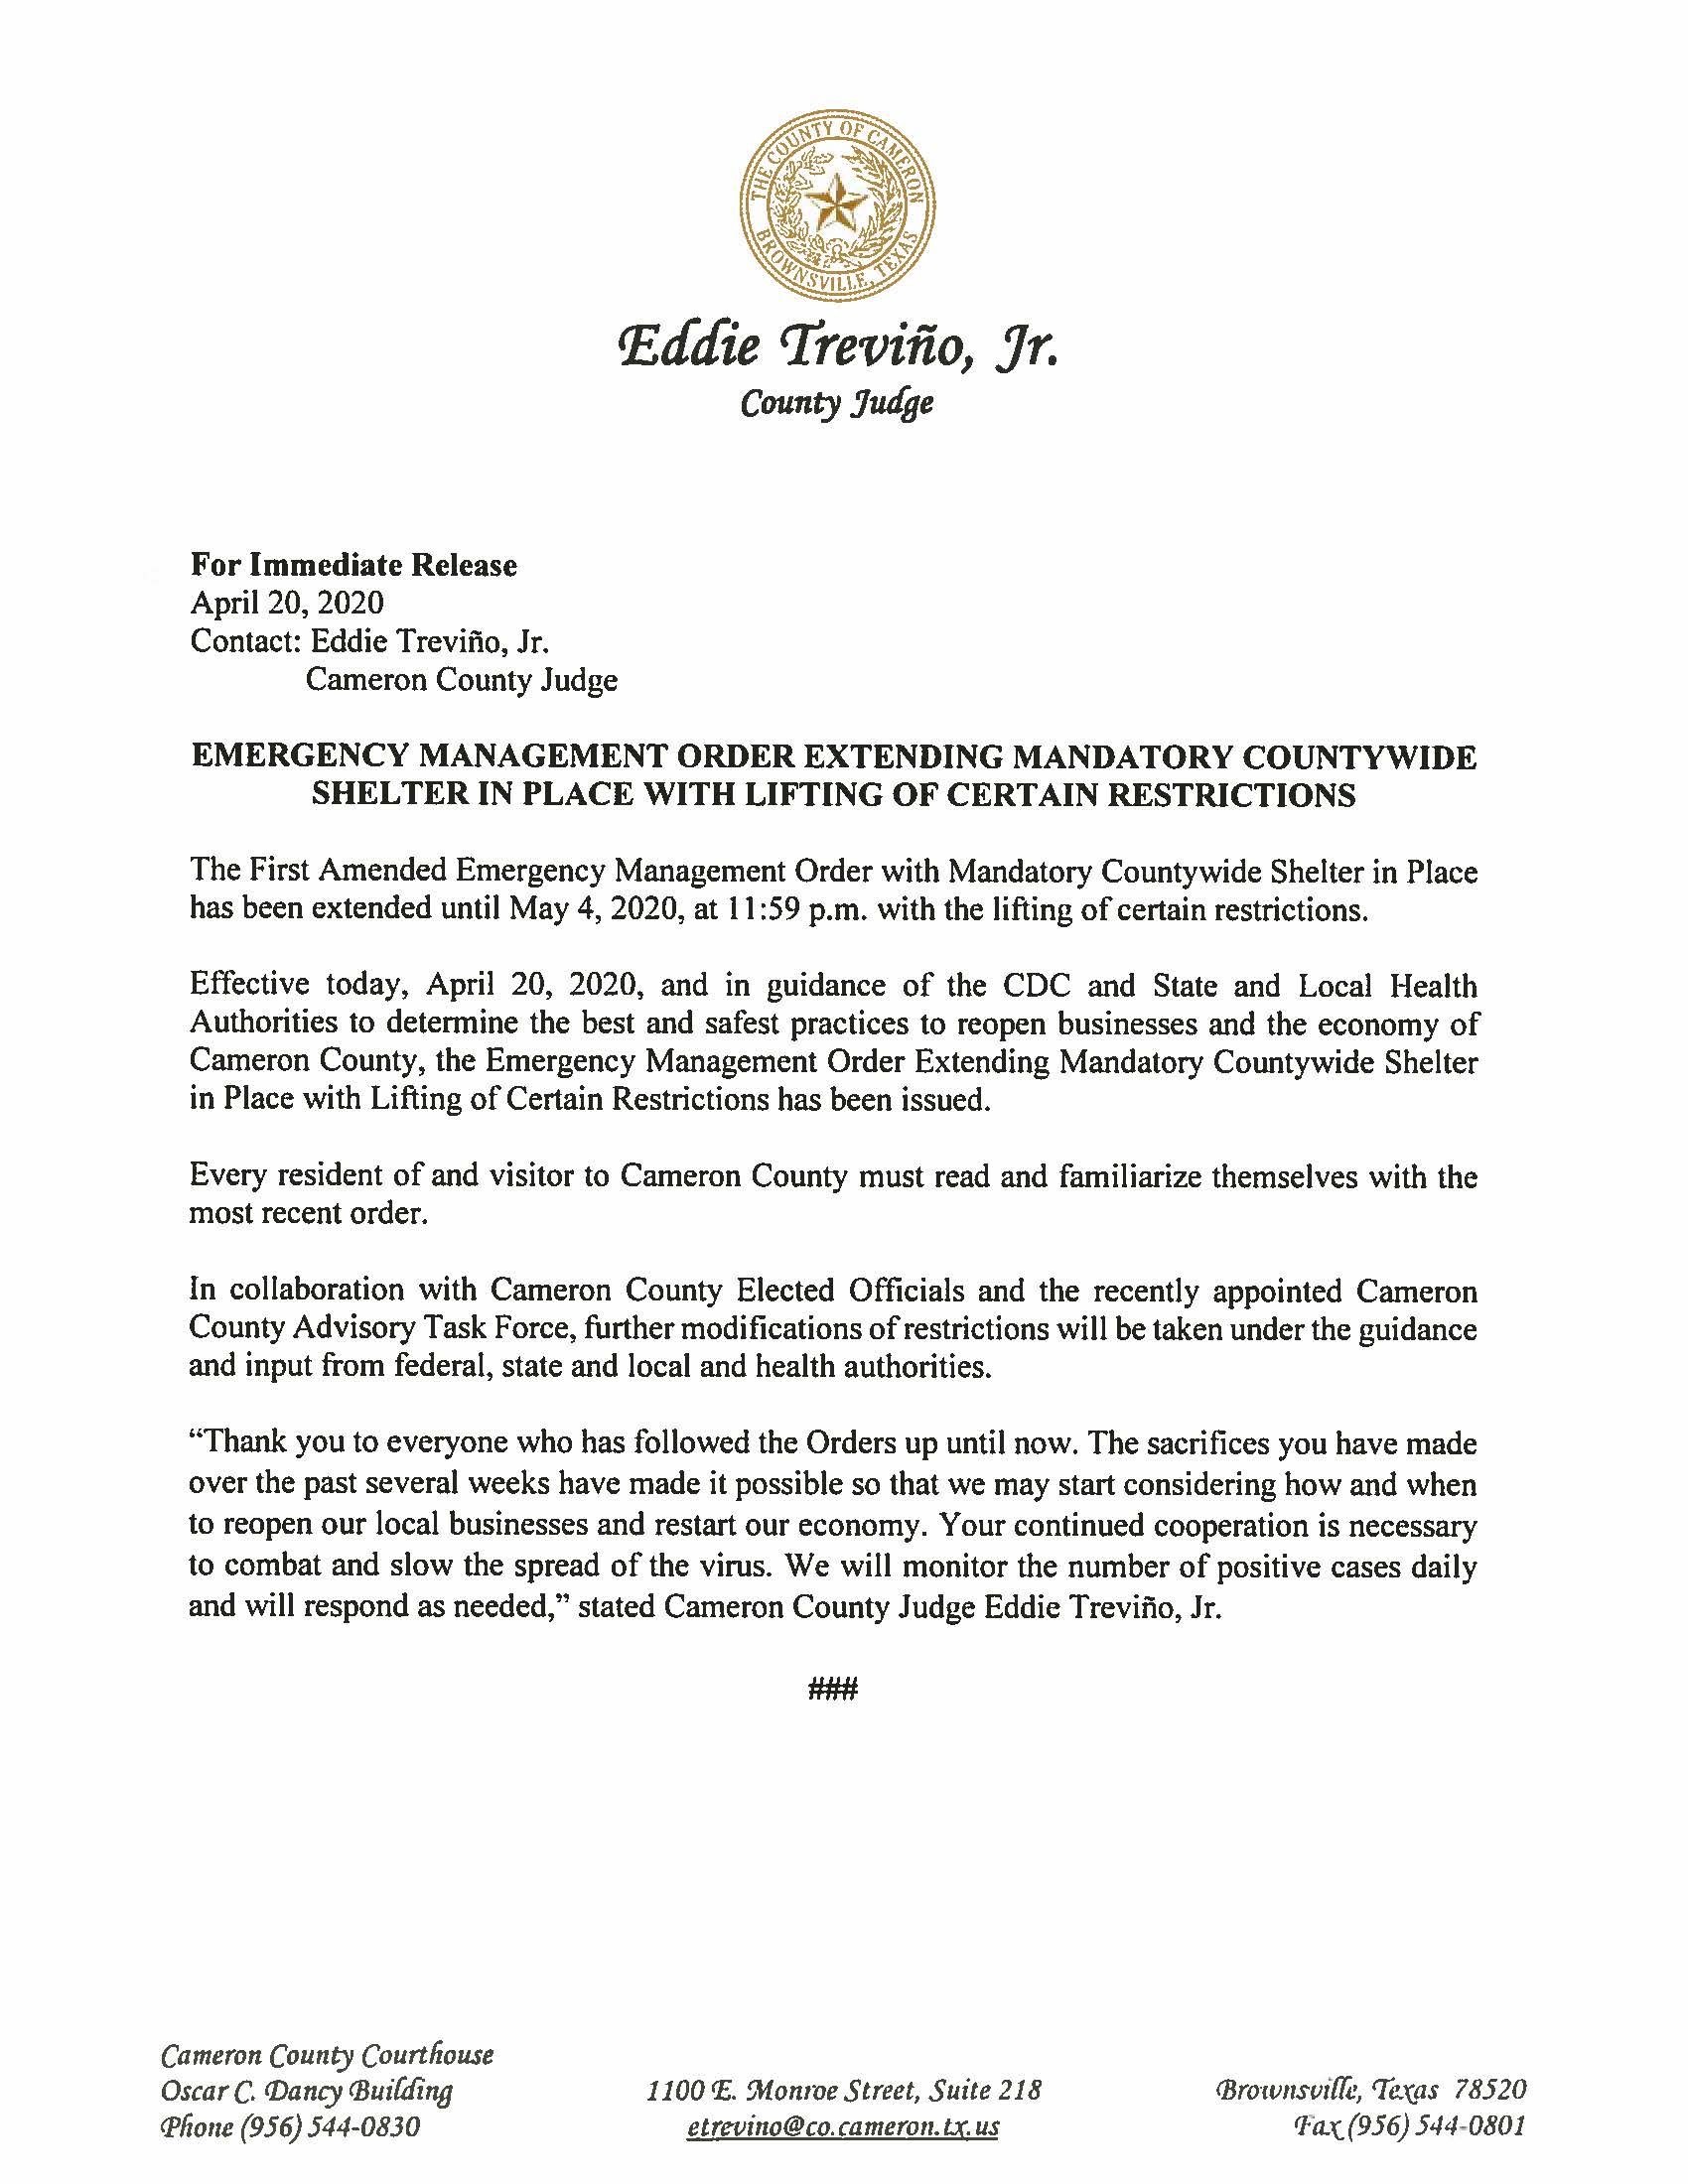 04.20.2020 For Immediate Release Emergency Management Order Extending Mandatory Countywide Shelter in Place with Lifting of Certain Restrictions - Cameron County Housing Authority Application